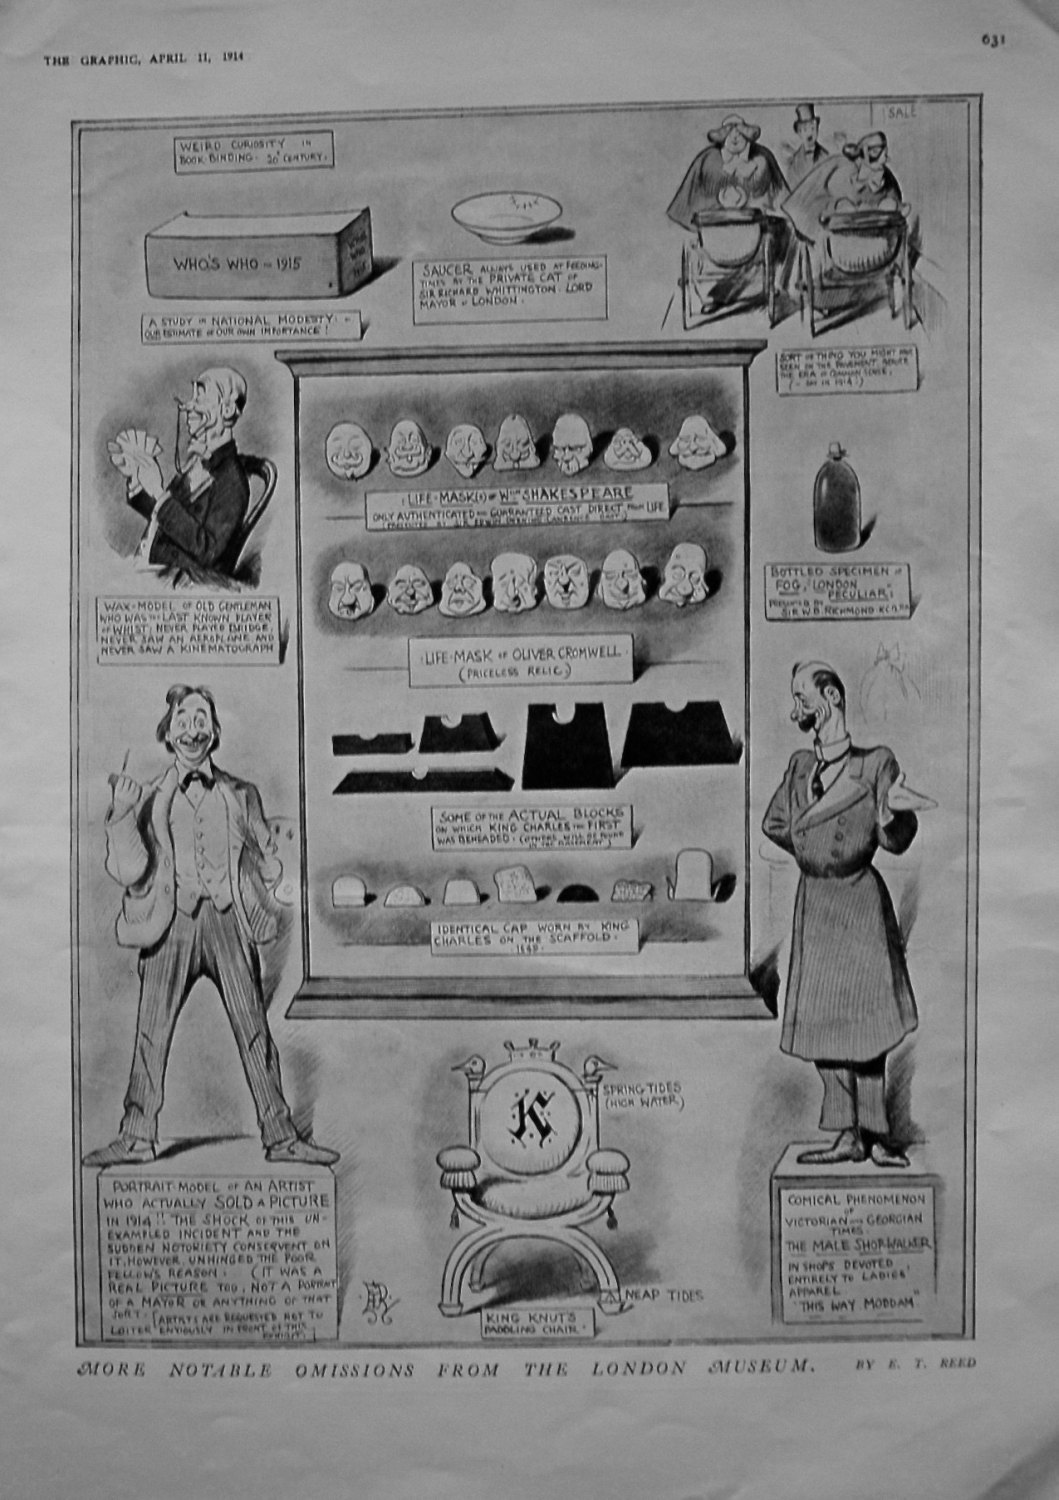 More Notable Omissions From The London Museum. 1914